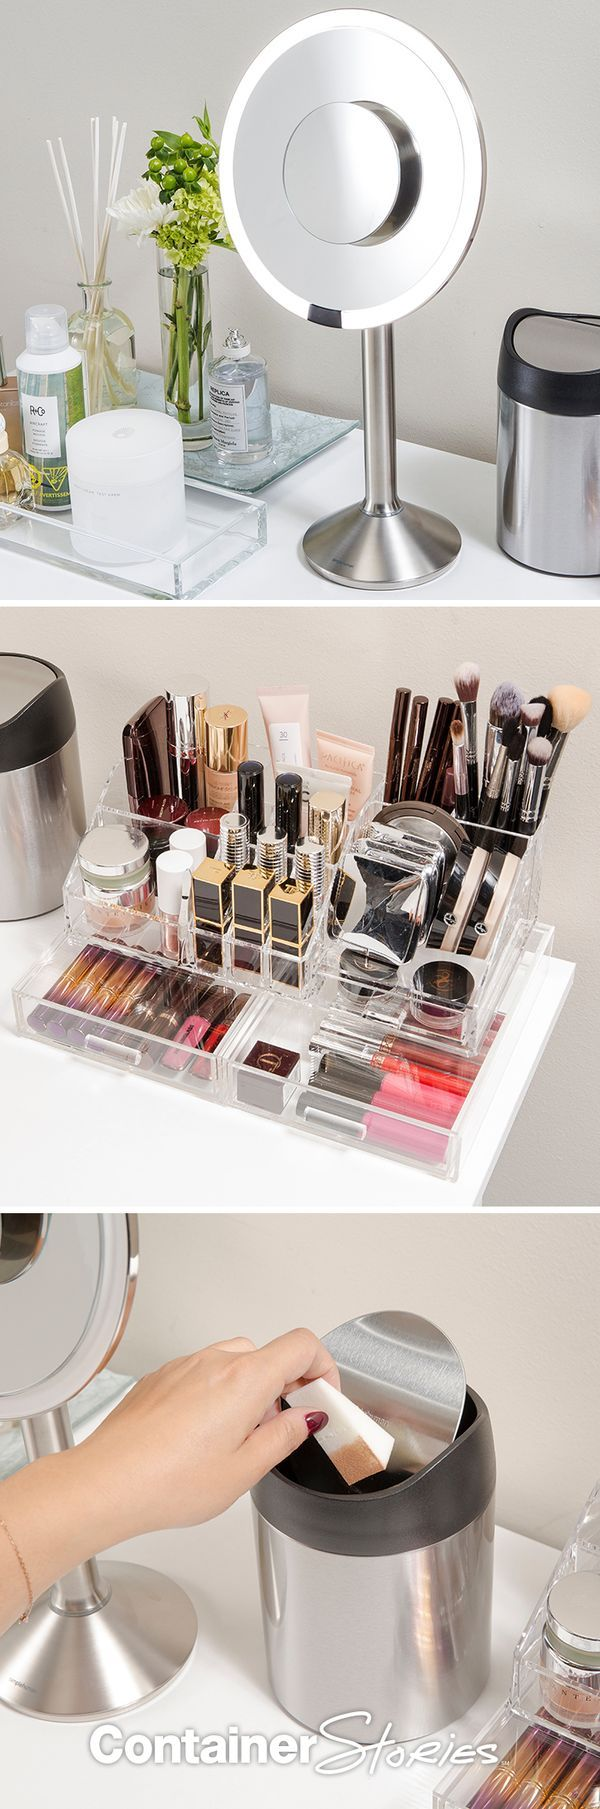 EVERYTHING IN ITS PLACE Acrylic makeup organizers are your friends, especially ones with compartments that allow you to separate your makeup tools by category: brushes, lipsticks, eyeliners, etc. This allows you to see everything in clear view so you know exactly where to find your favorite blush without rummaging through one large disorganized drawer.